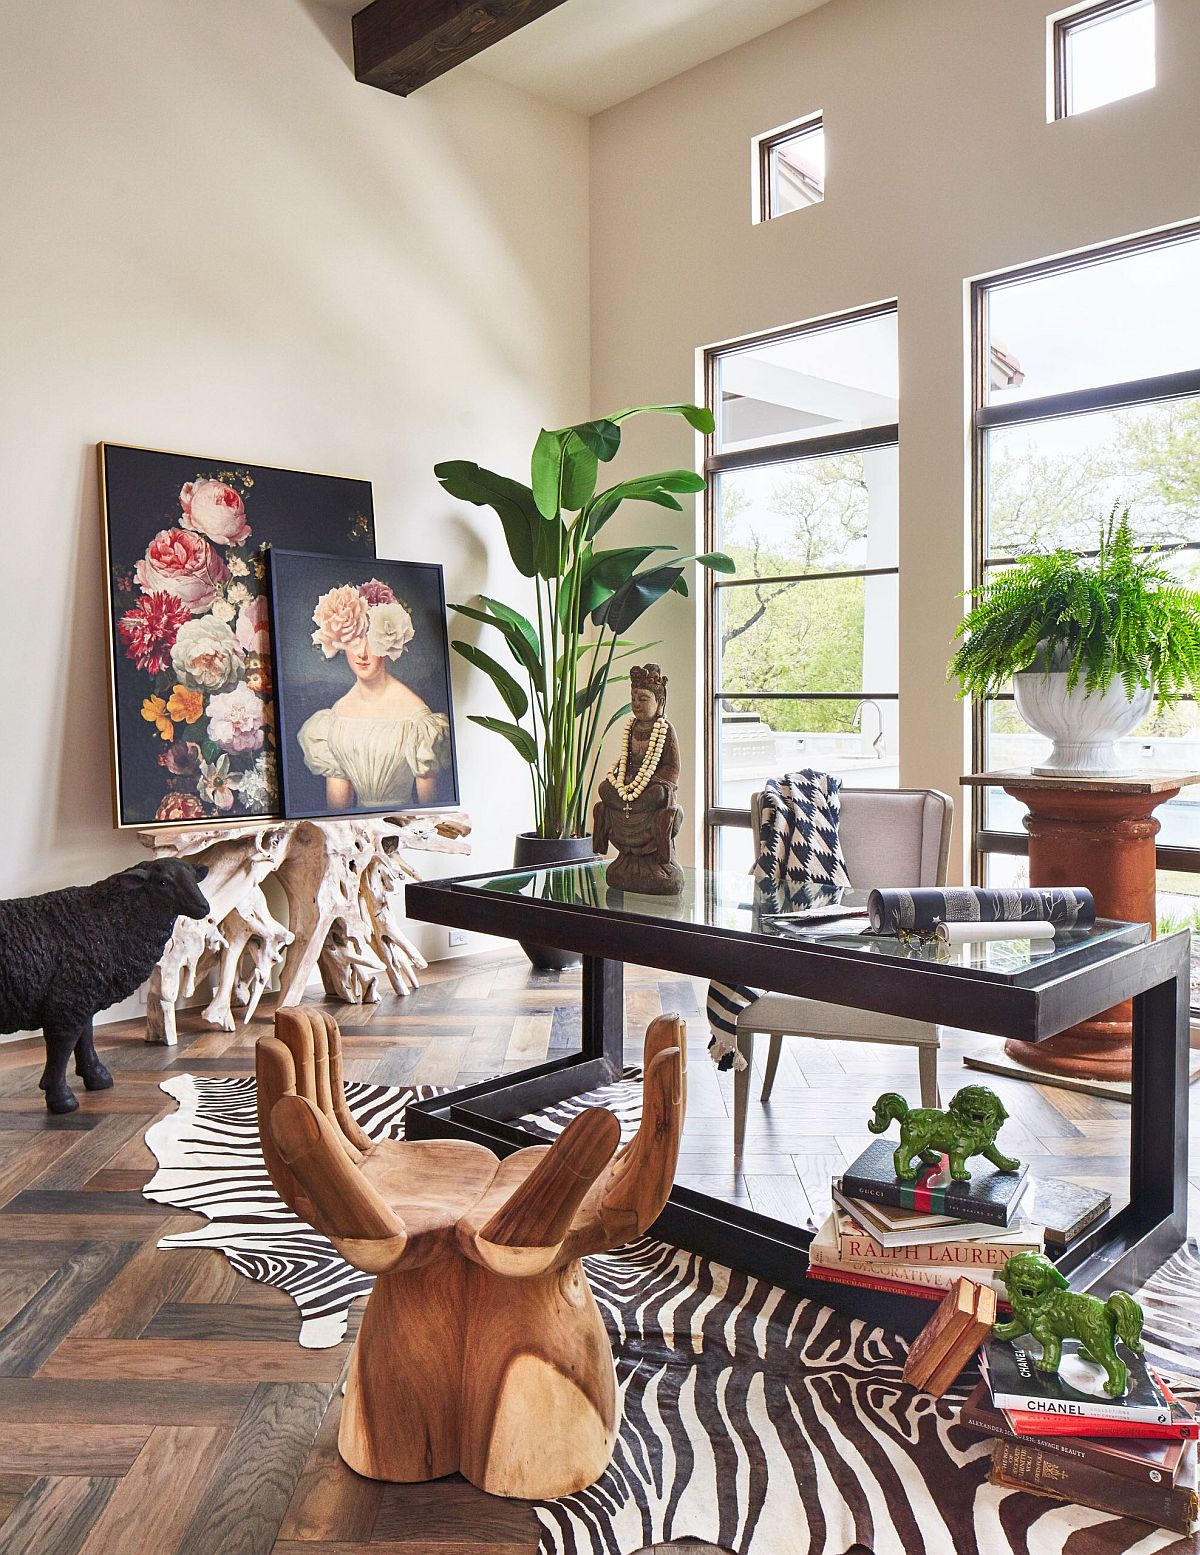 Mediterranean and eclectic influences thrown into the mix inside the home office